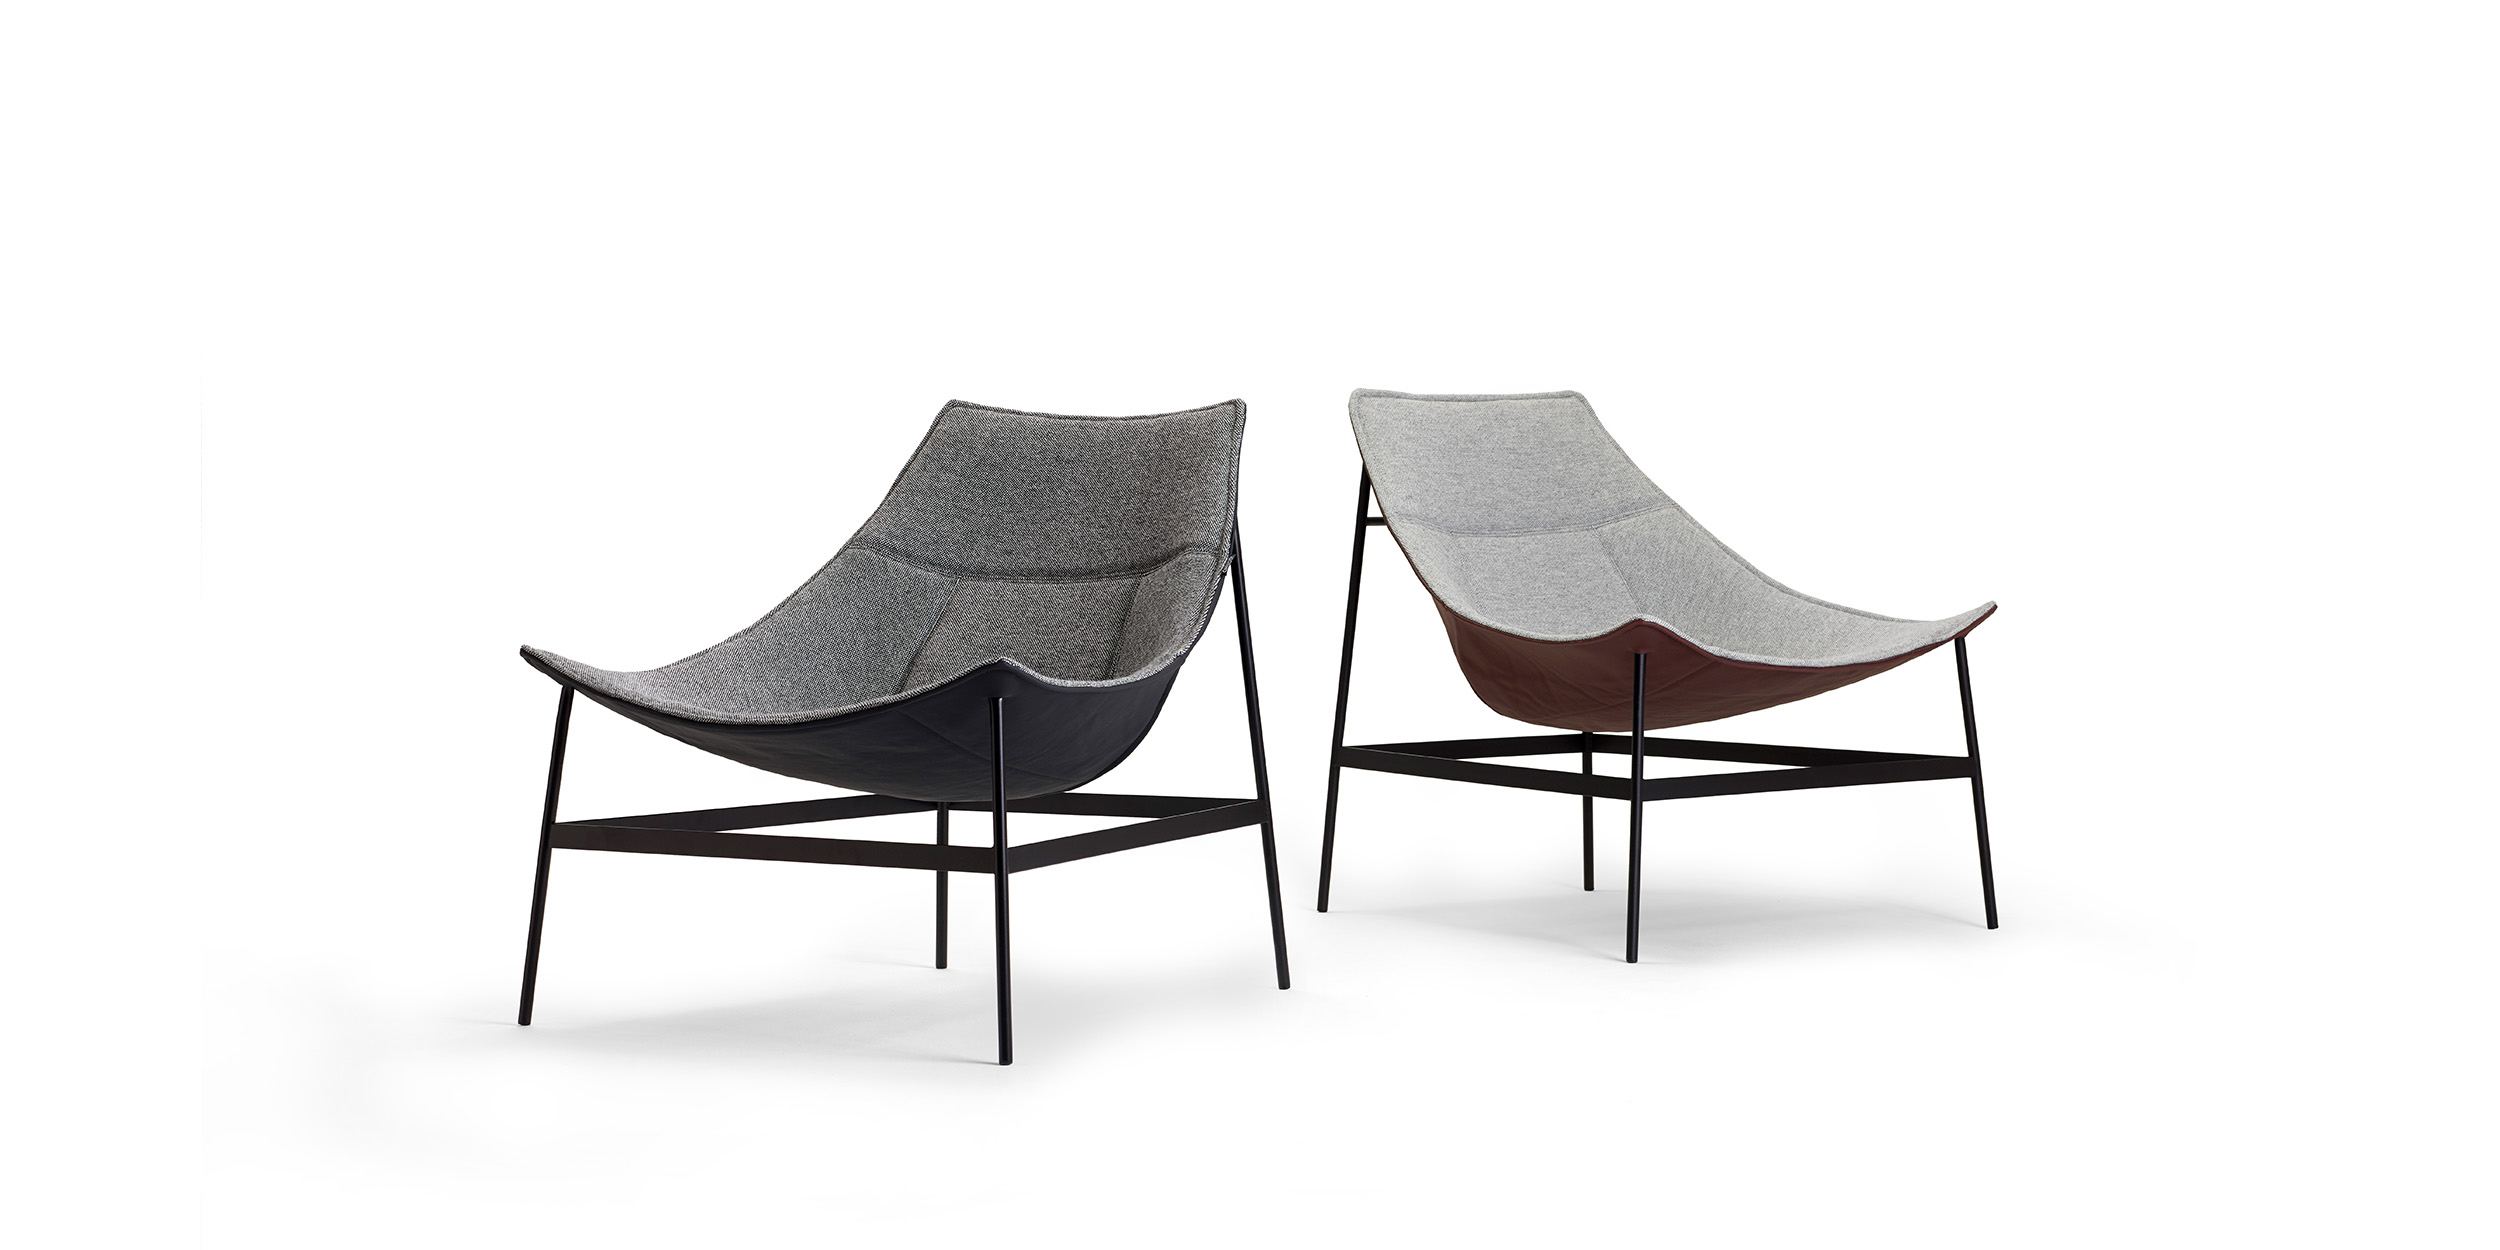 Montparnasse, Easy chair by Christophe Pillet